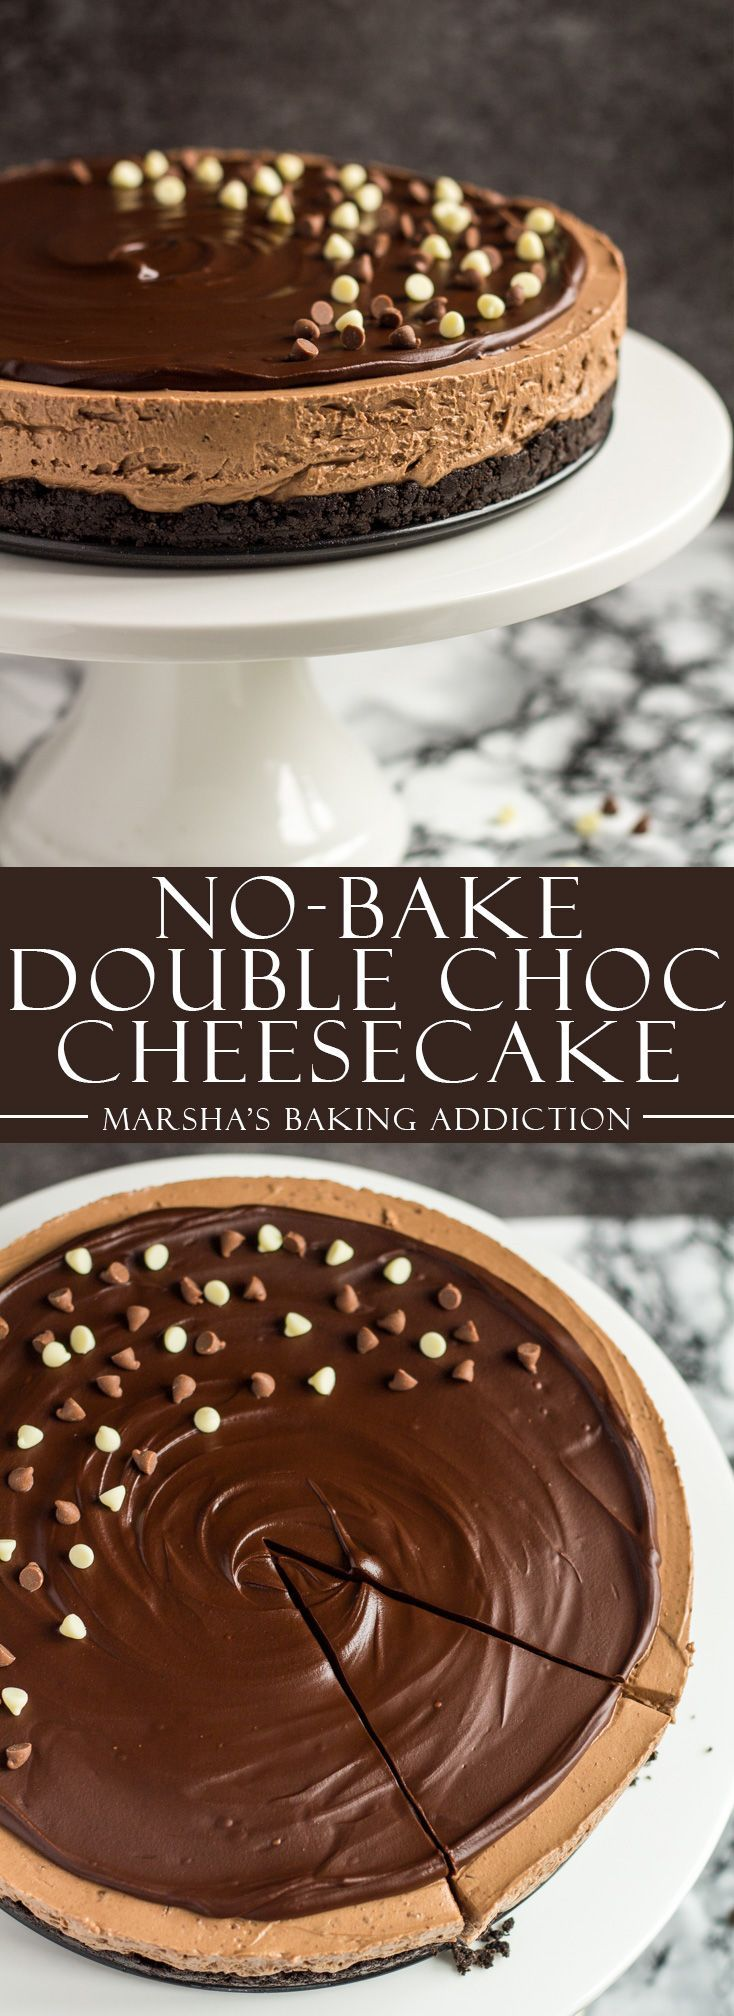 No-Bake Double Chocolate Cheesecake | marshasbakingaddiction.com